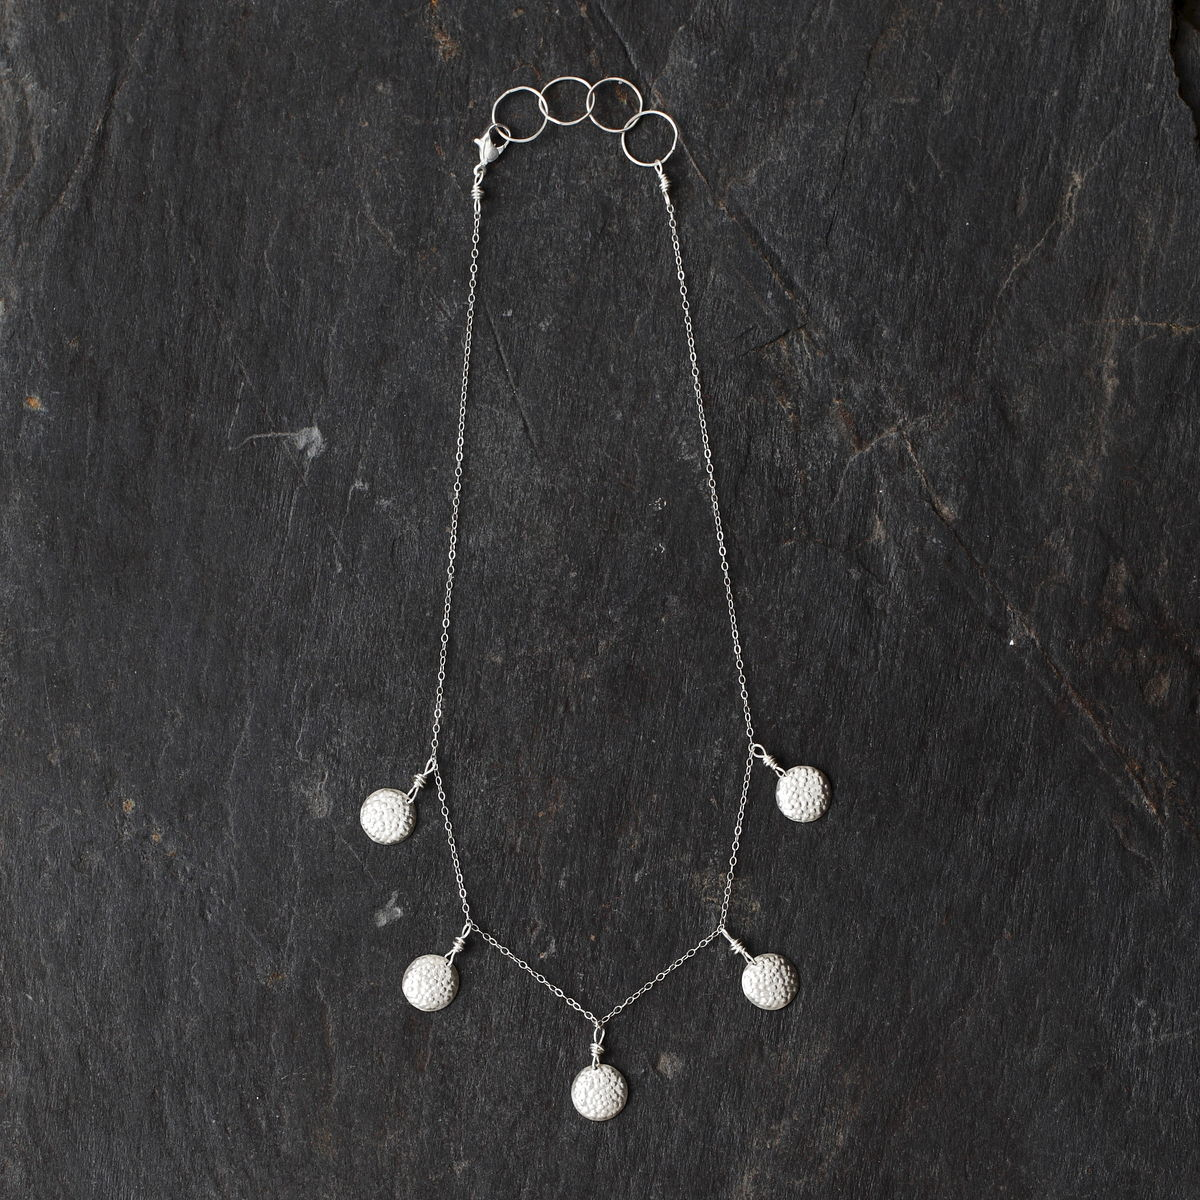 Tiered Bumpy Disc necklace (Sterling Silver) - product images  of